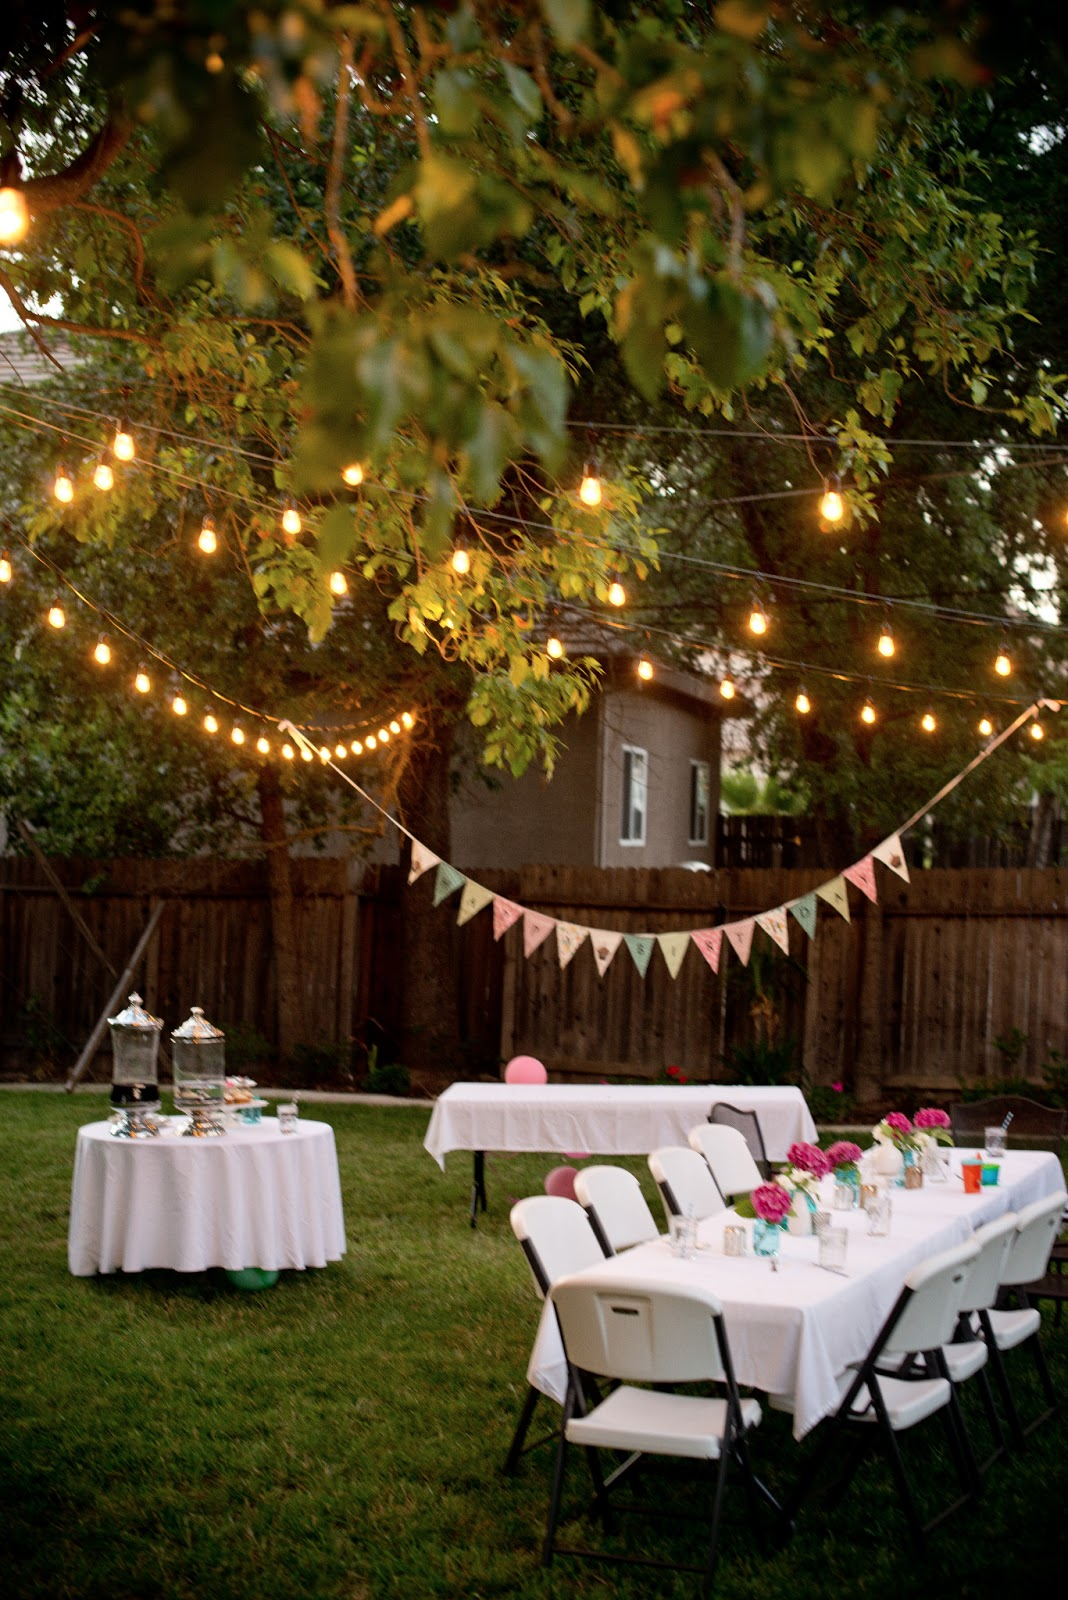 Back yard party ideas for adults quotes for Backyard engagement party decoration ideas